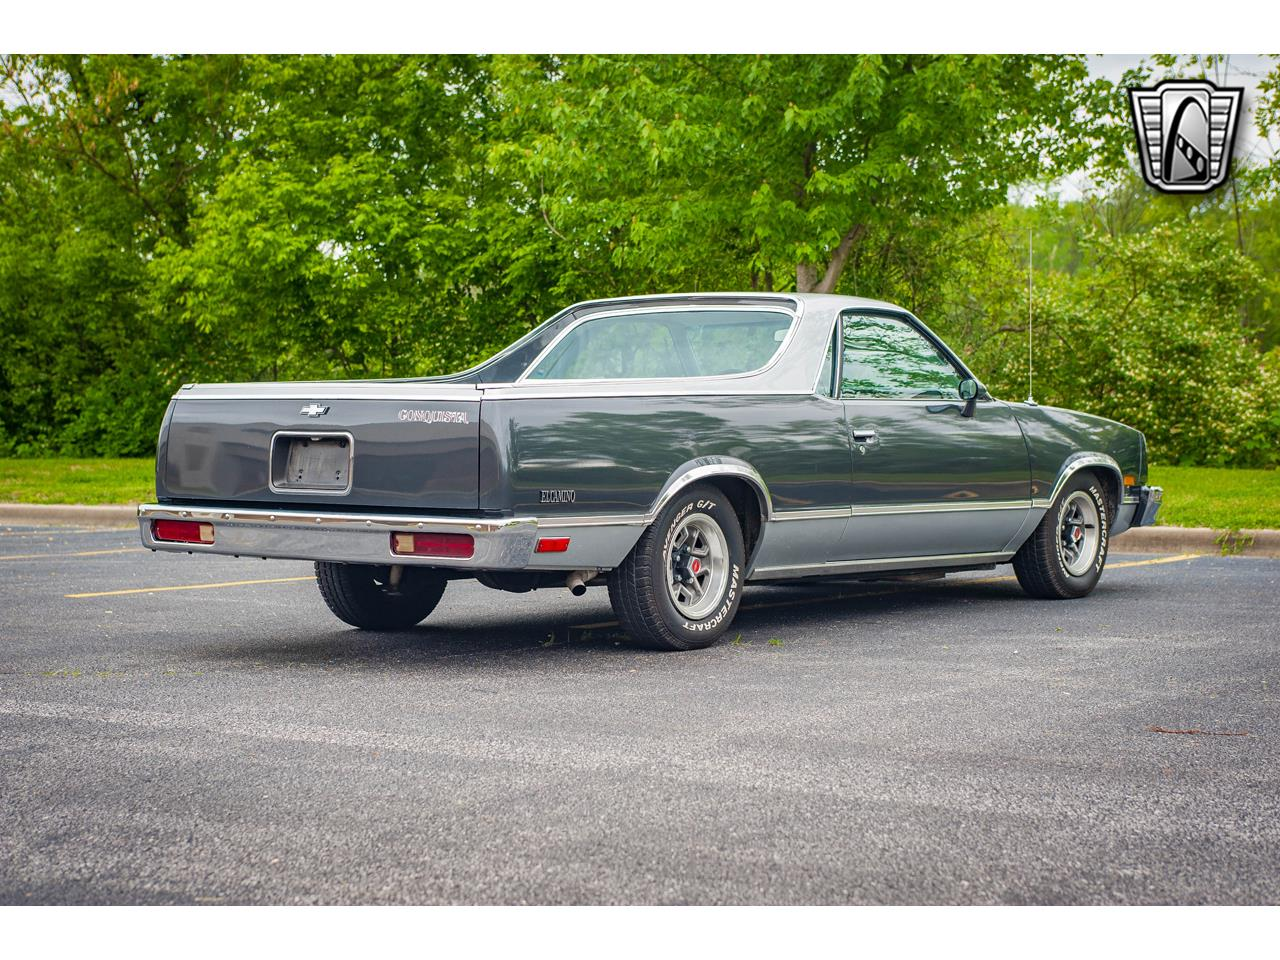 Large Picture of 1982 Chevrolet El Camino located in O'Fallon Illinois Offered by Gateway Classic Cars - St. Louis - QB9A